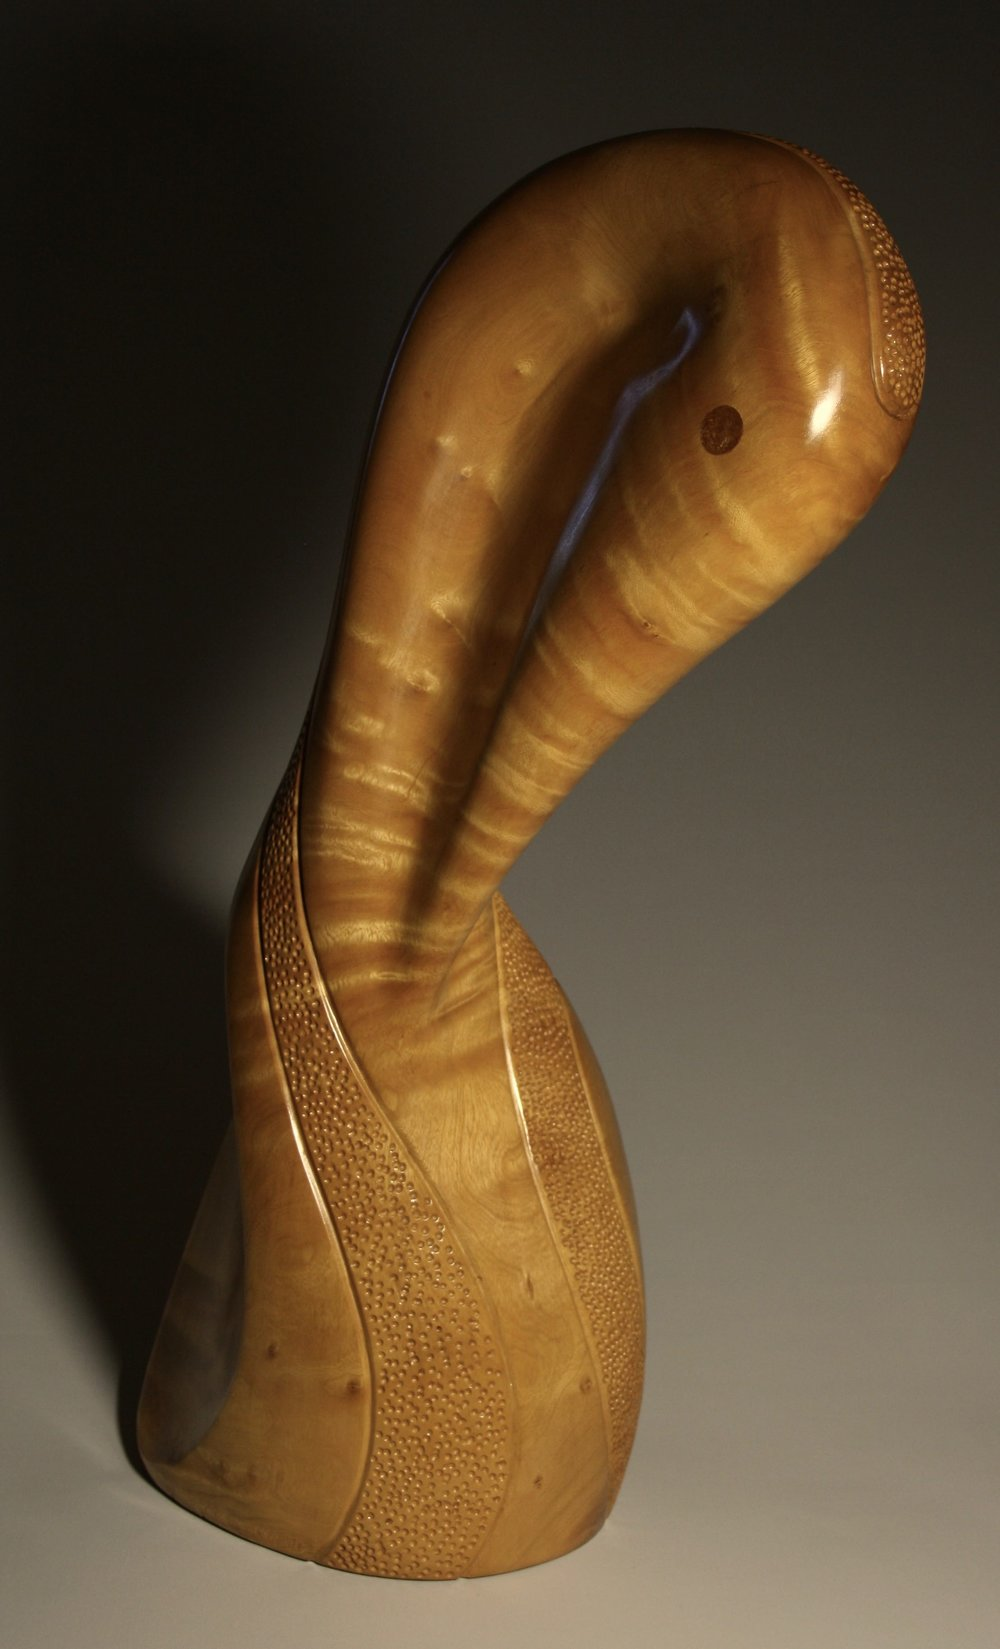 'Pelican Preening'     Dimensions:  72x45x25cm   Wood:  Jacaranda   Artist Statement:  I have always been taken by how birds can manage to twist their necks and reach nearly all parts of their body and delicately preen each feather and look immaculate. By careful orientation I was able to align the beautiful markings in the grain to give the illusion of layers of feathers.